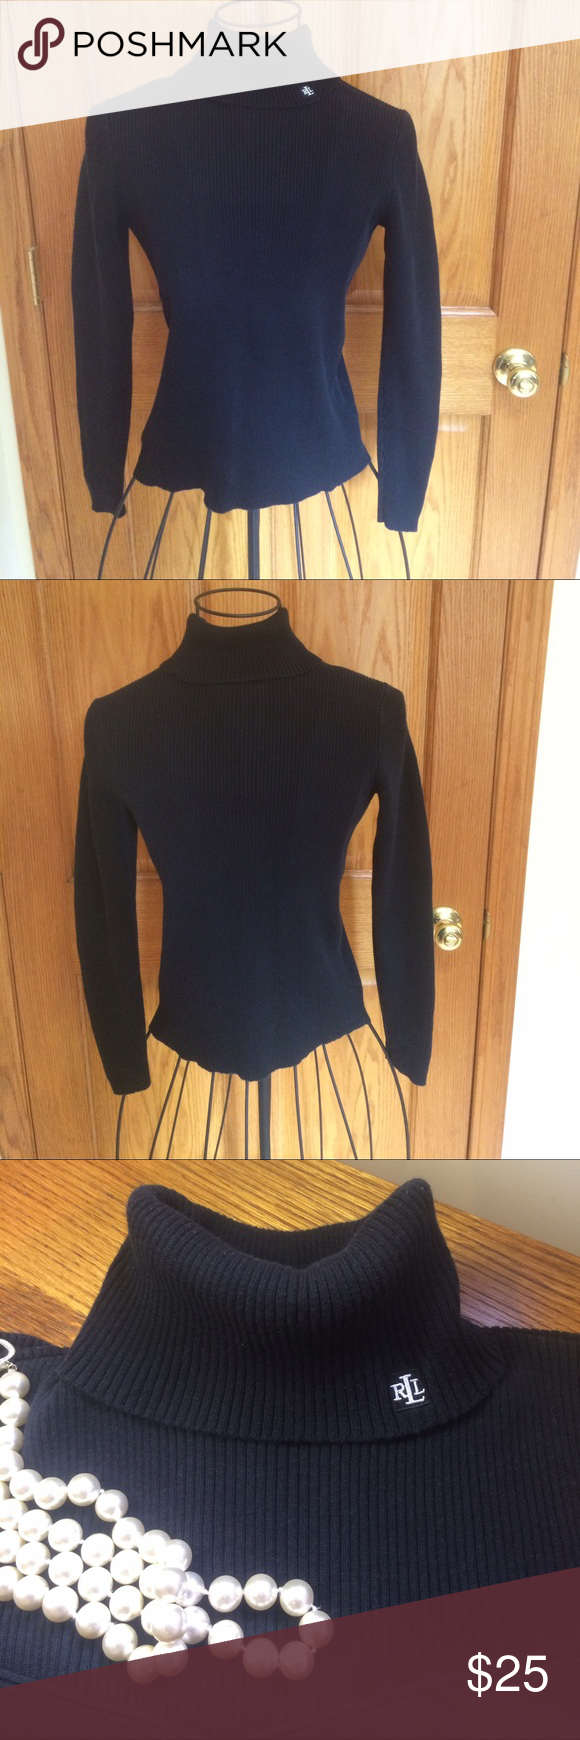 Lauren Ralph Lauren Black Turtleneck Top Black ribbed turtleneck ...